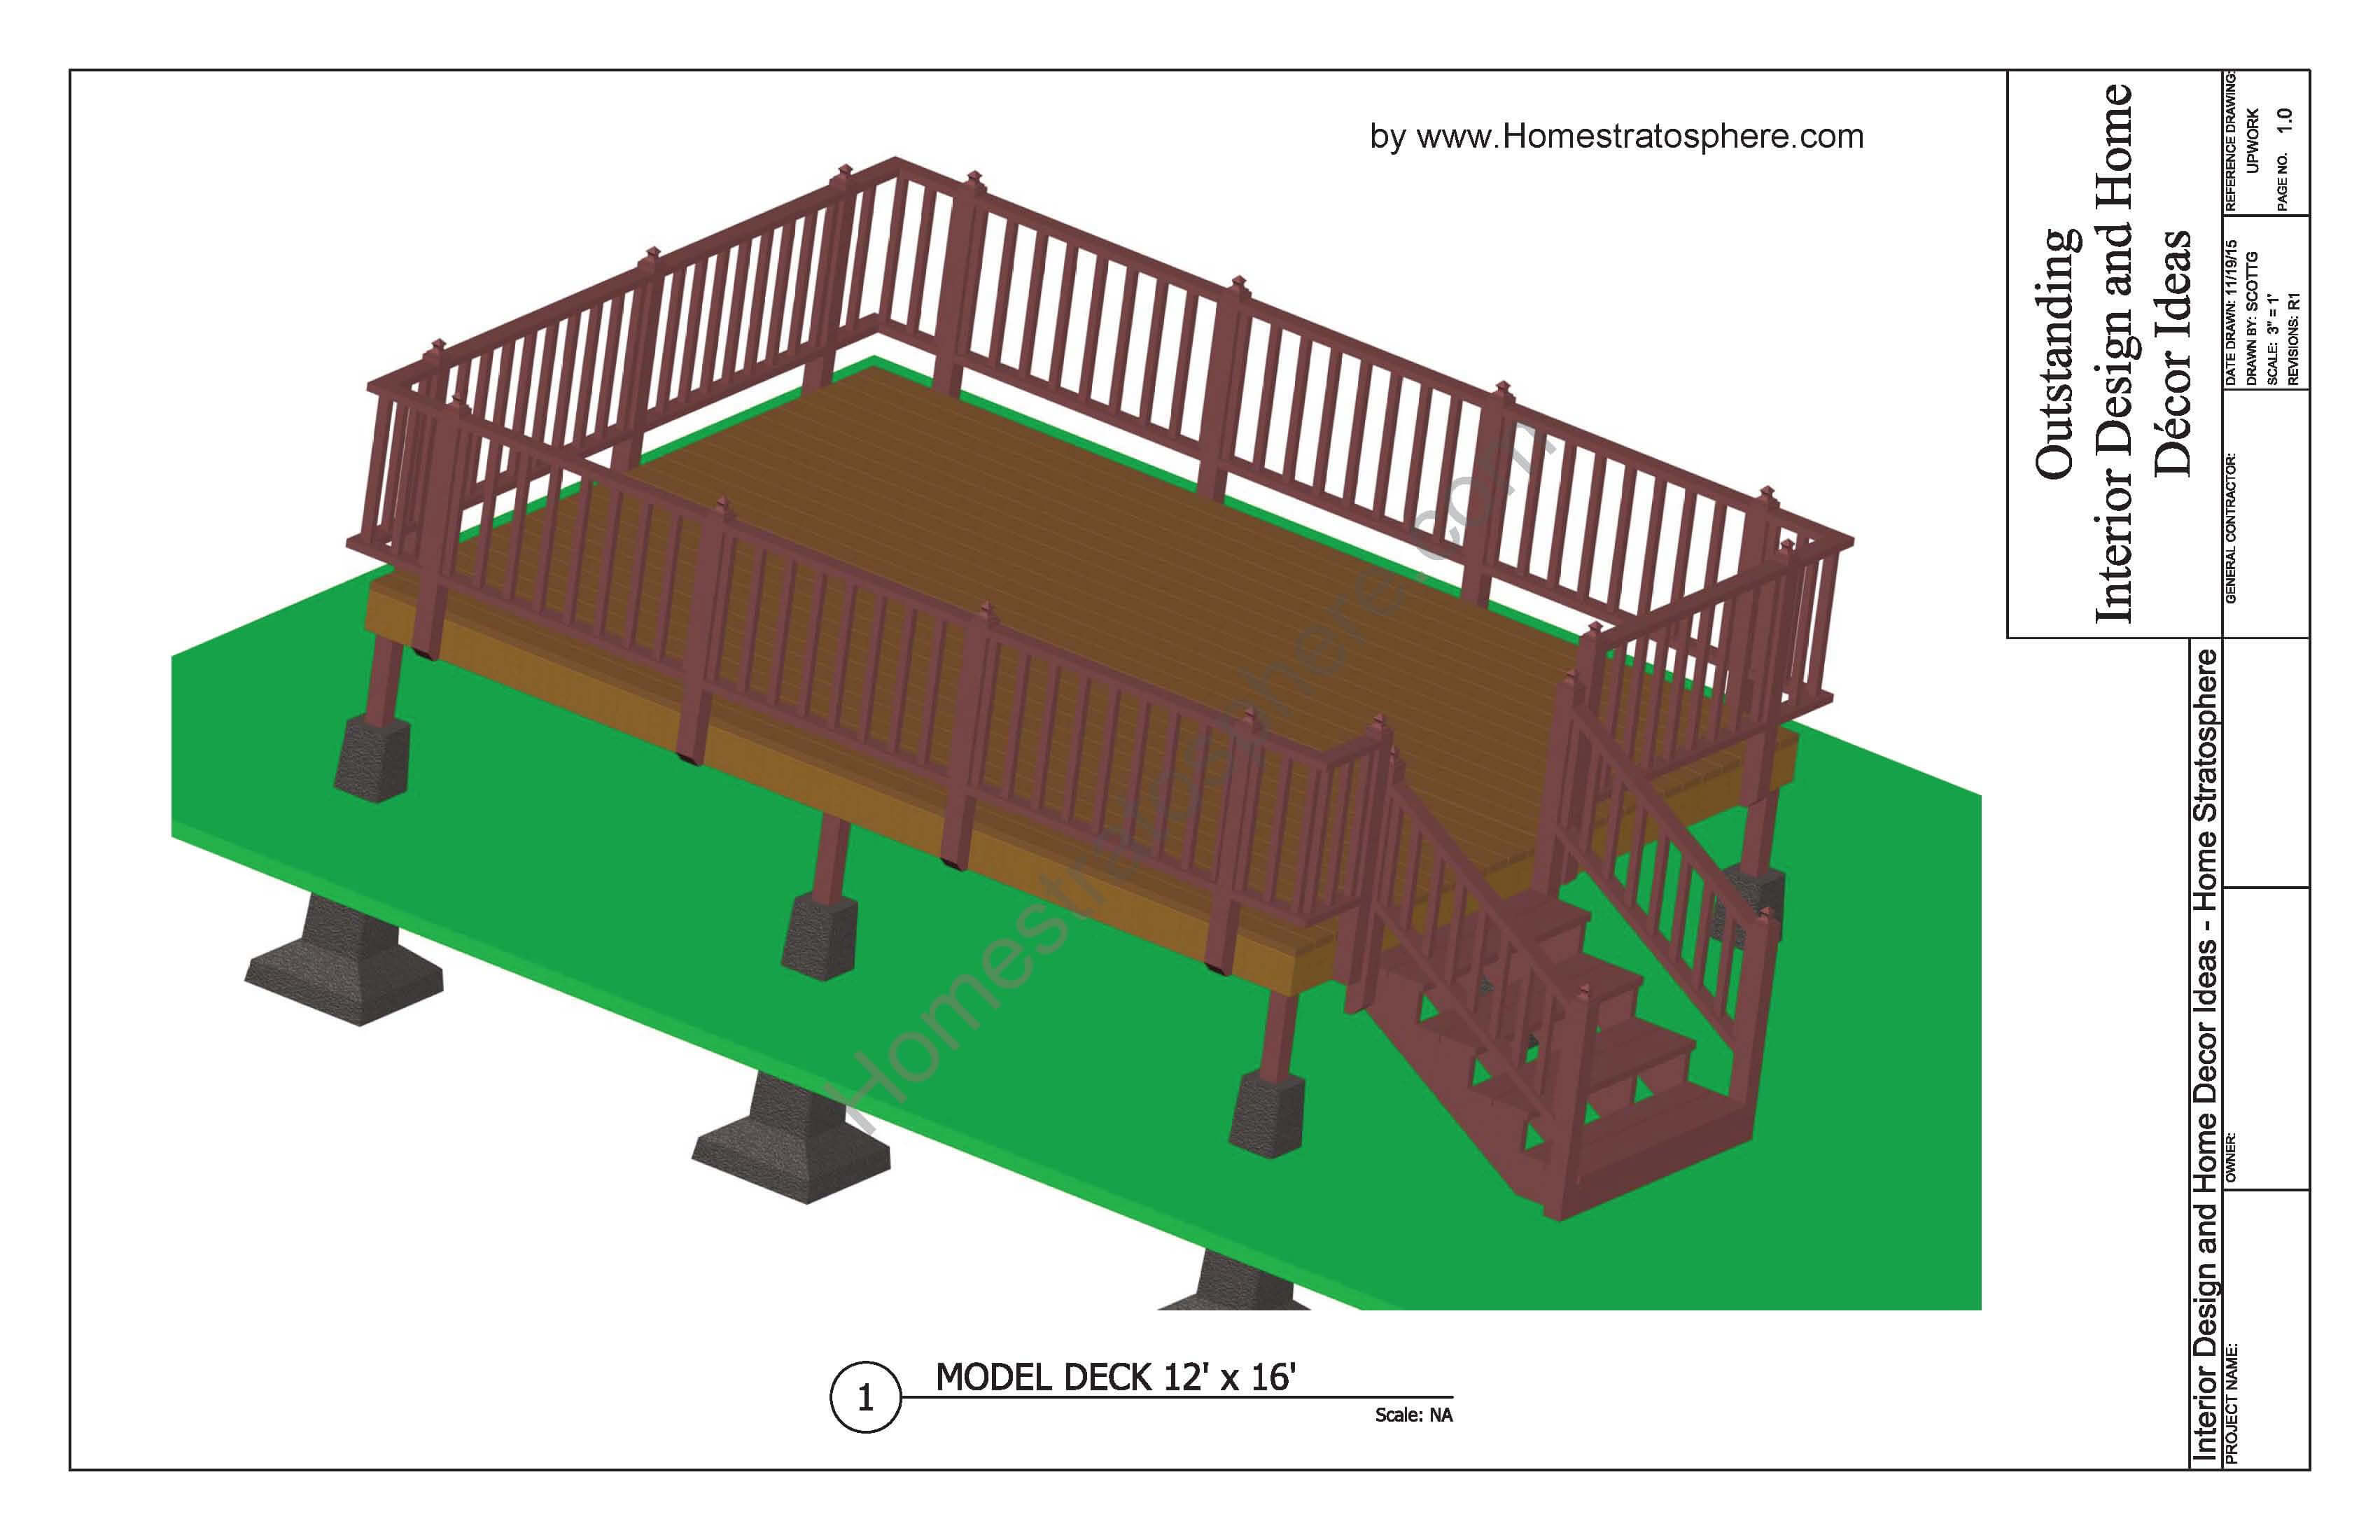 Free deck plans and blueprints online with pdf downloads 12x16 deck plan baanklon Gallery